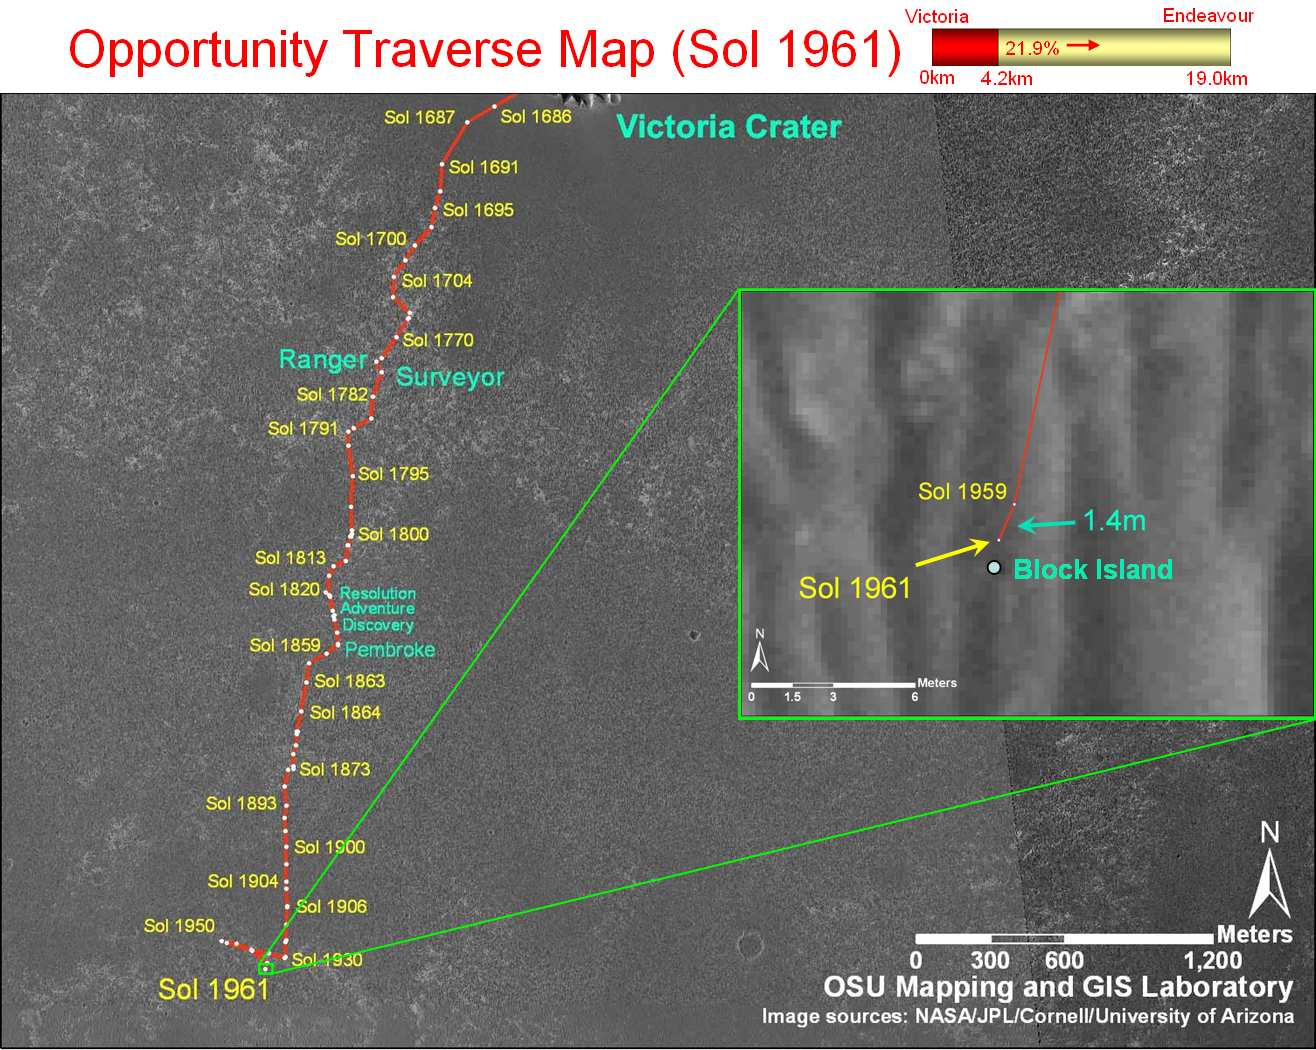 NASA - Opportunity's traverse map through Sol 1961